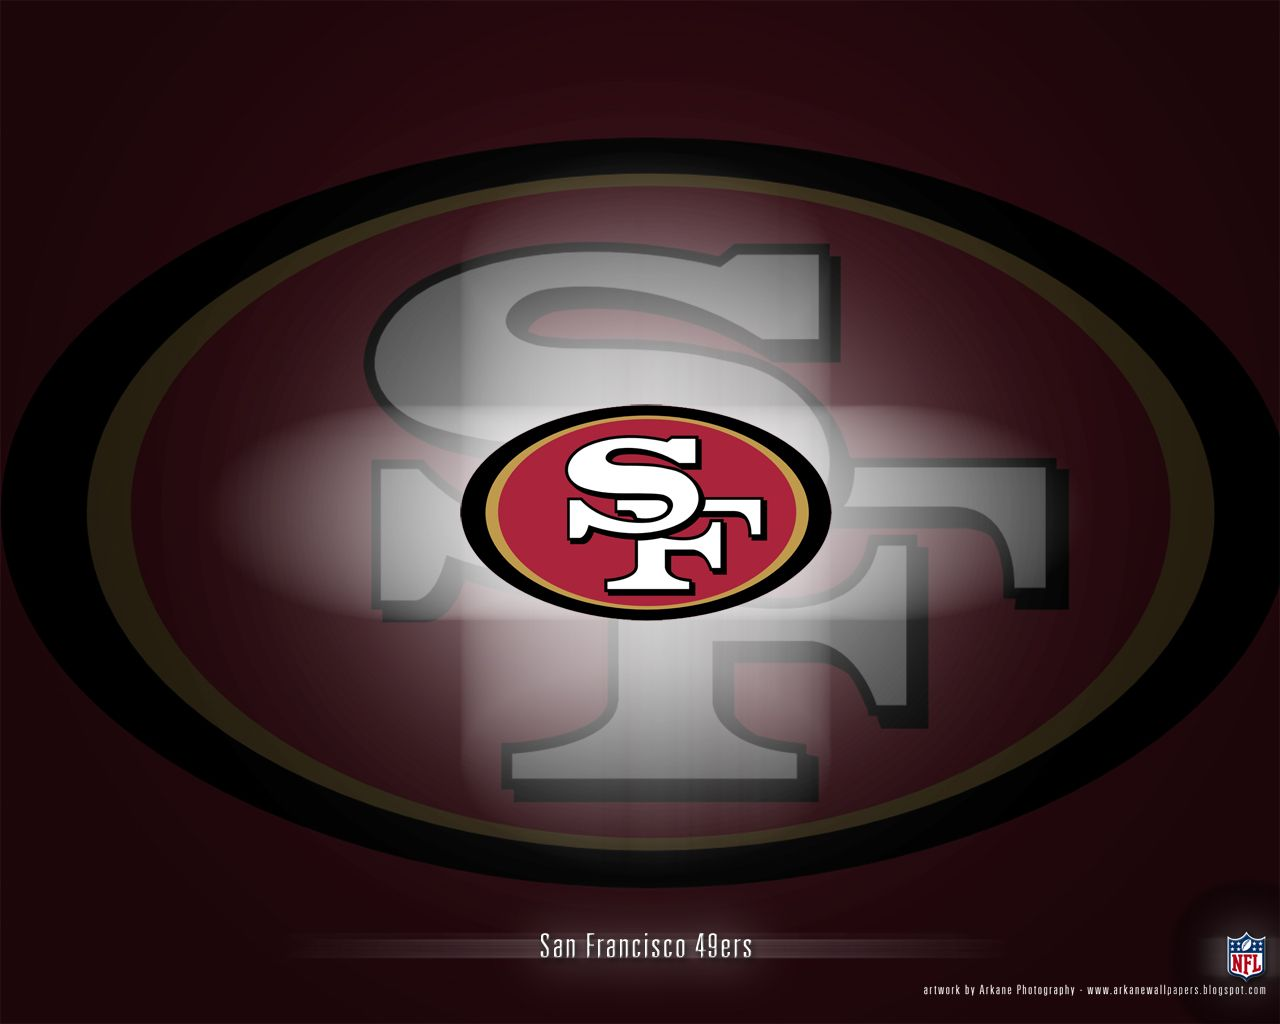 San francisco 49ers cartoons hope you like this san francisco san francisco 49ers cartoons hope you like this san francisco 49ers wallpaper hd wallpaper as much voltagebd Images